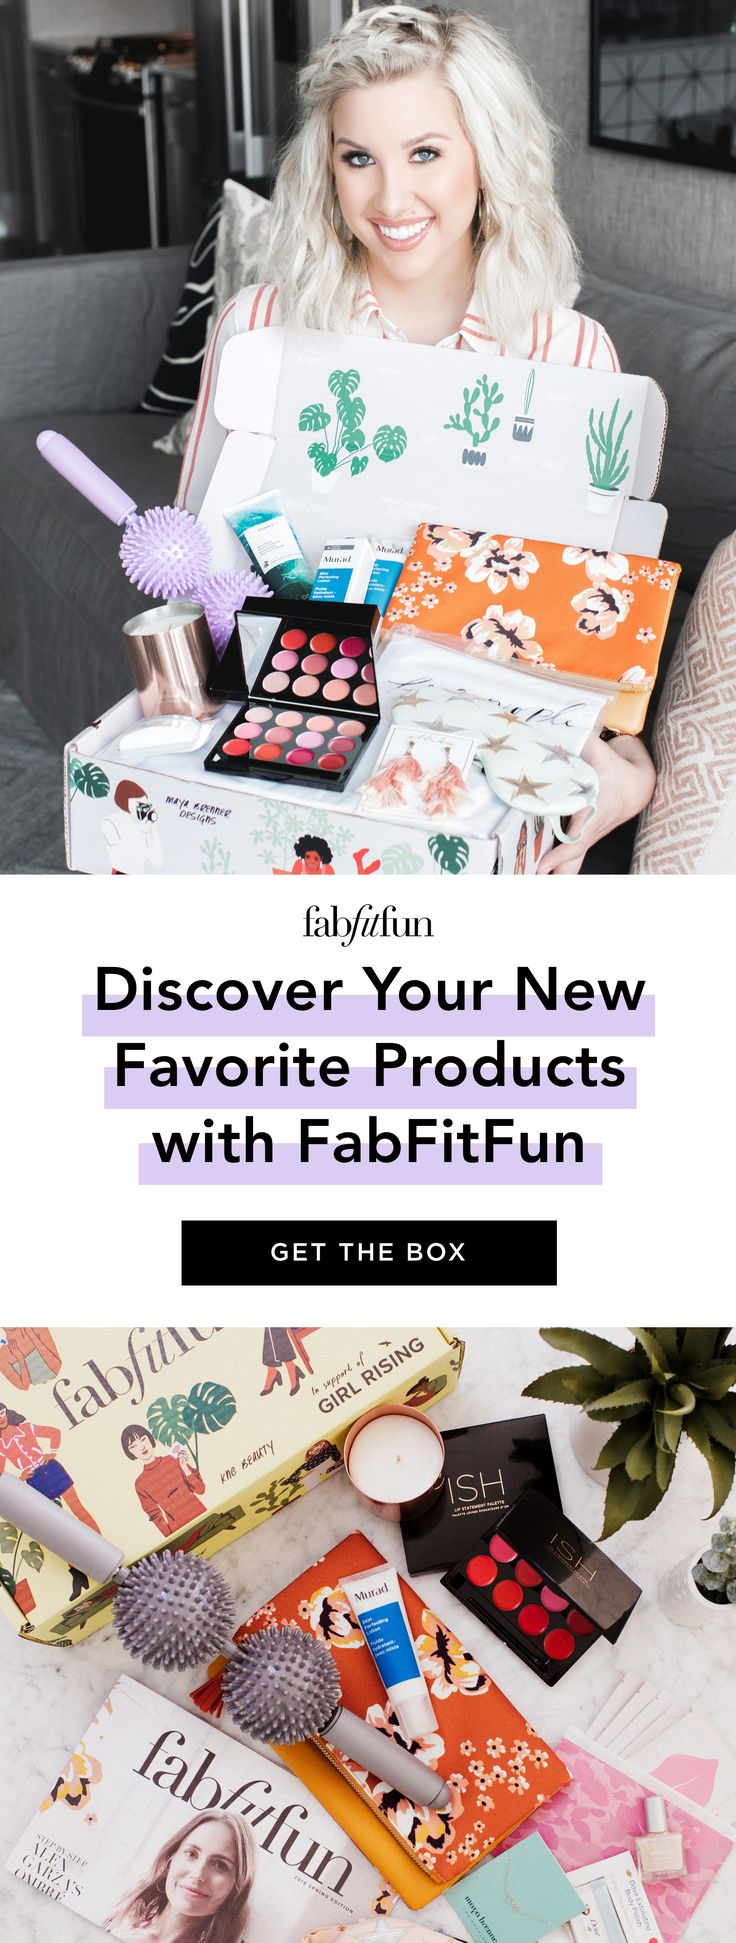 See why Savannah calls FabFitFun a MUST-HAVE & get 20% off your 1st box with code BRIGHT!